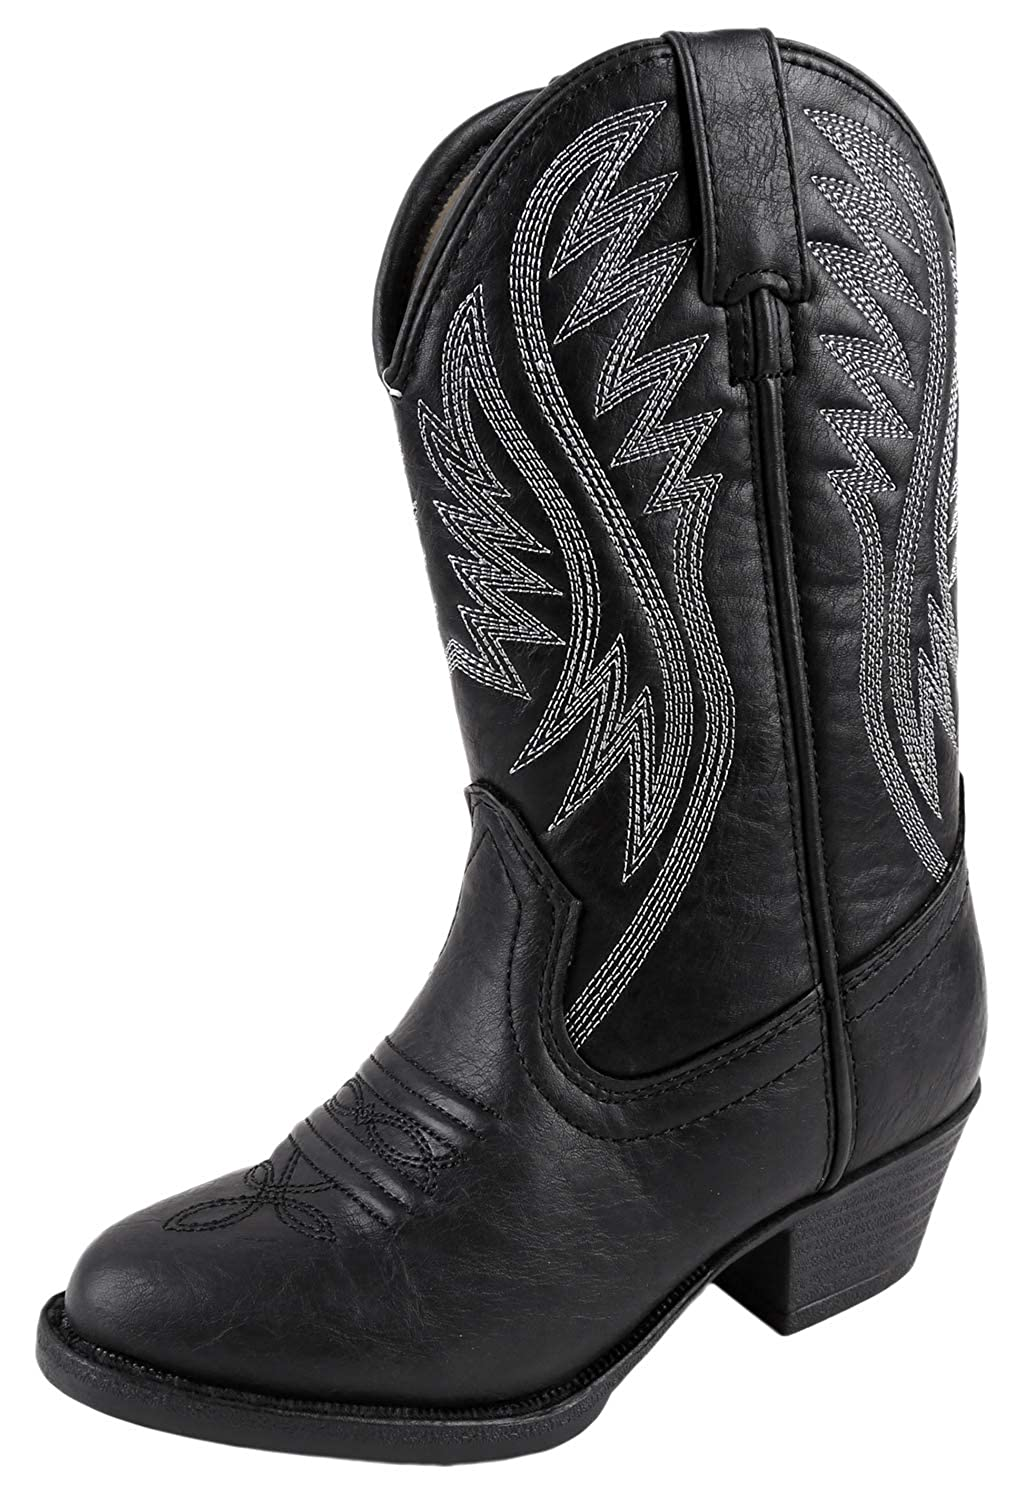 cd8c30914d6 Smoky Mountain Girls' Mesquite Western Boot Round Toe Black 10.5 D